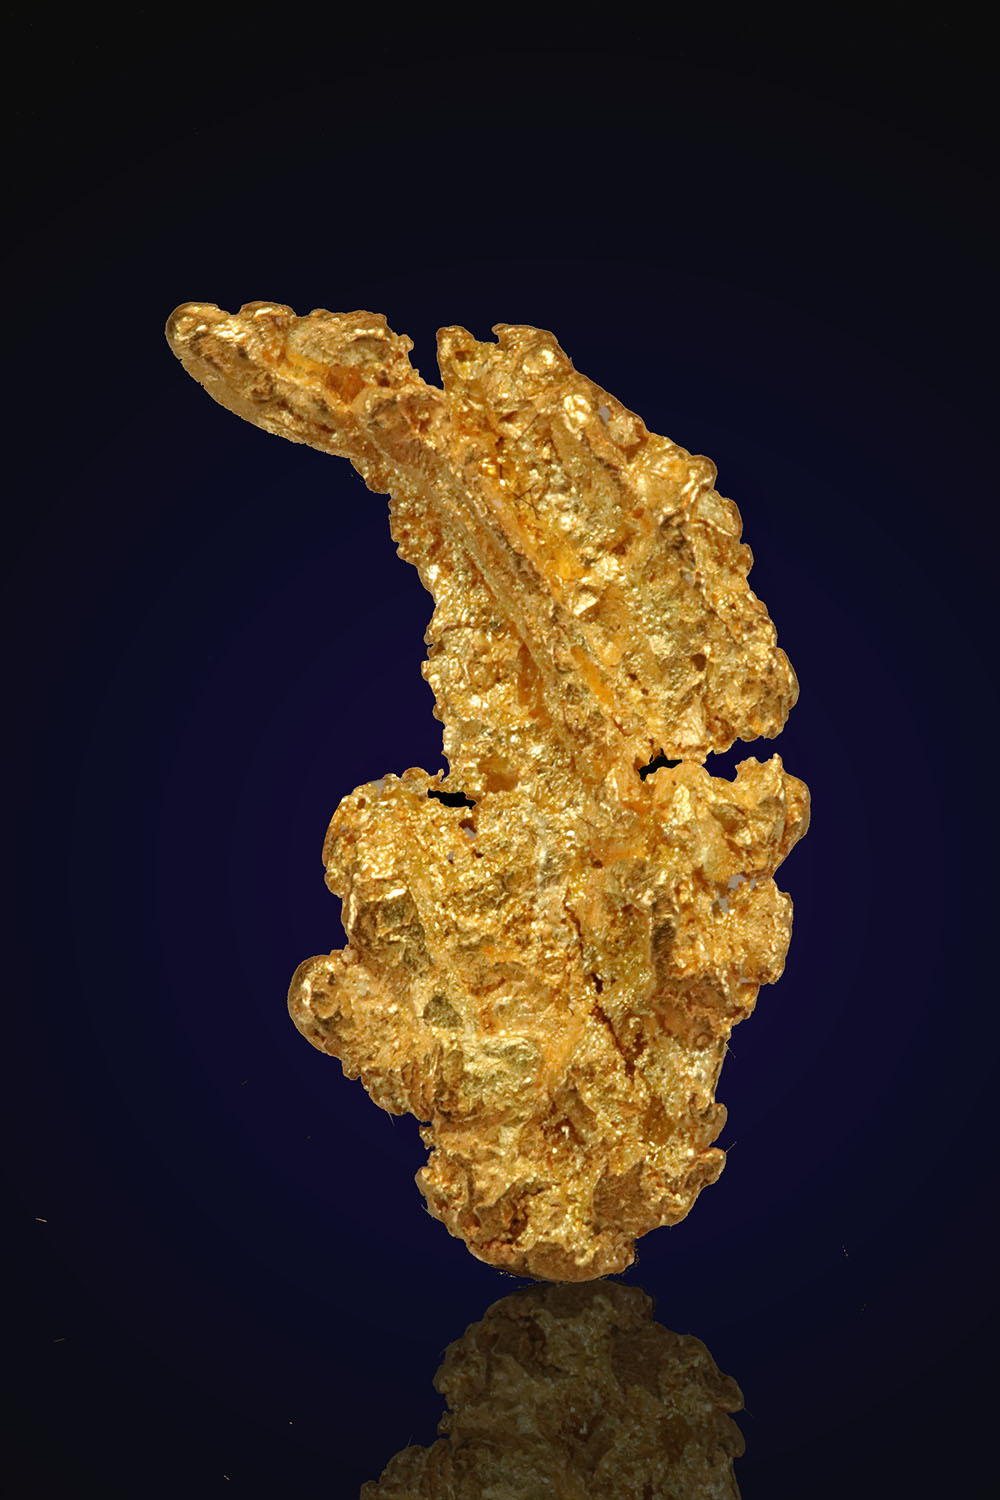 Sharp crystalline gold nugget from Alaska